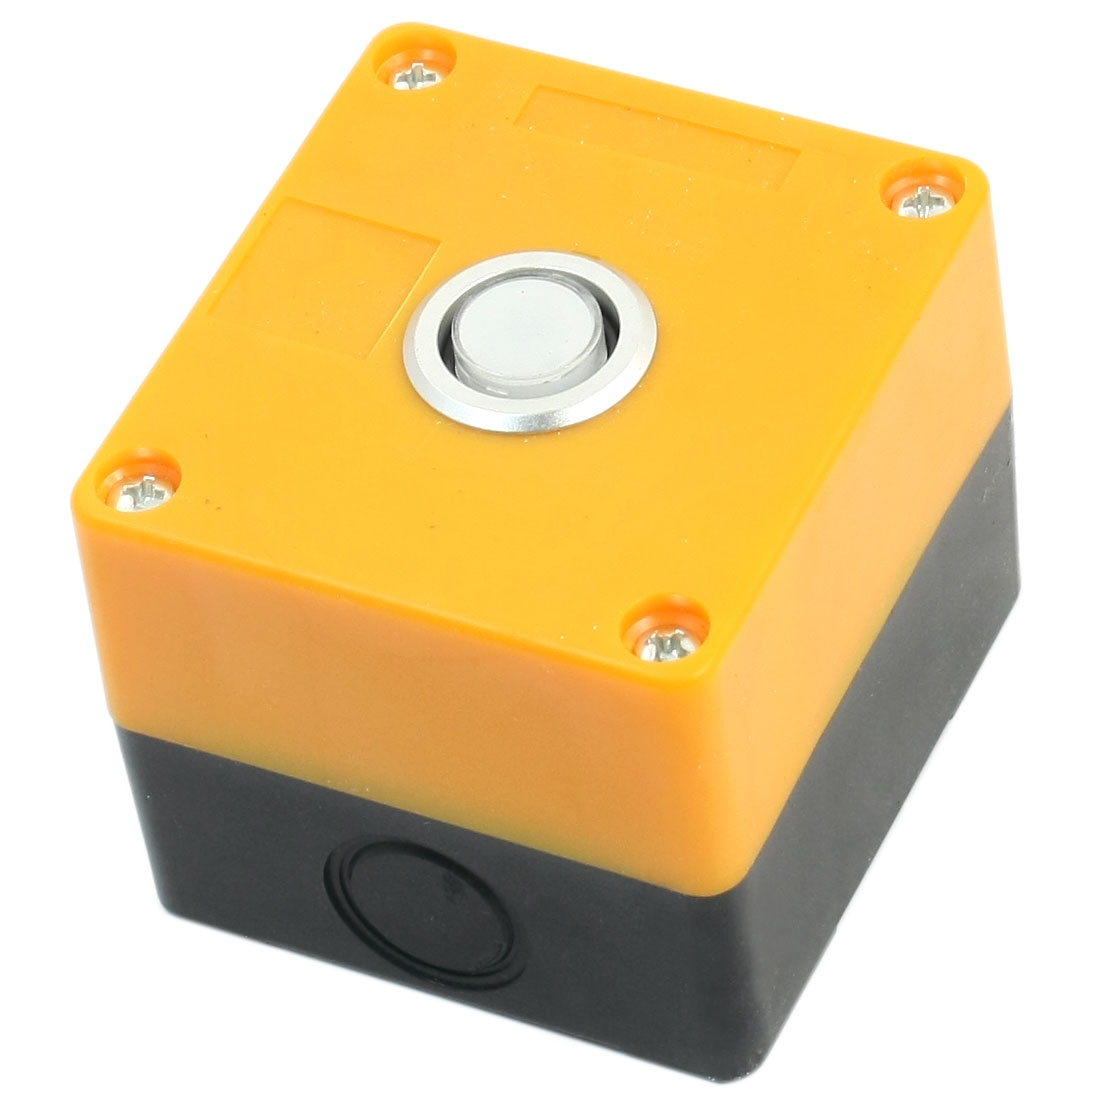 24V Warm White Light SPDT 1 NO 1 NC 5 Pin Soldering Momentary Type Pushbutton Control Station Box